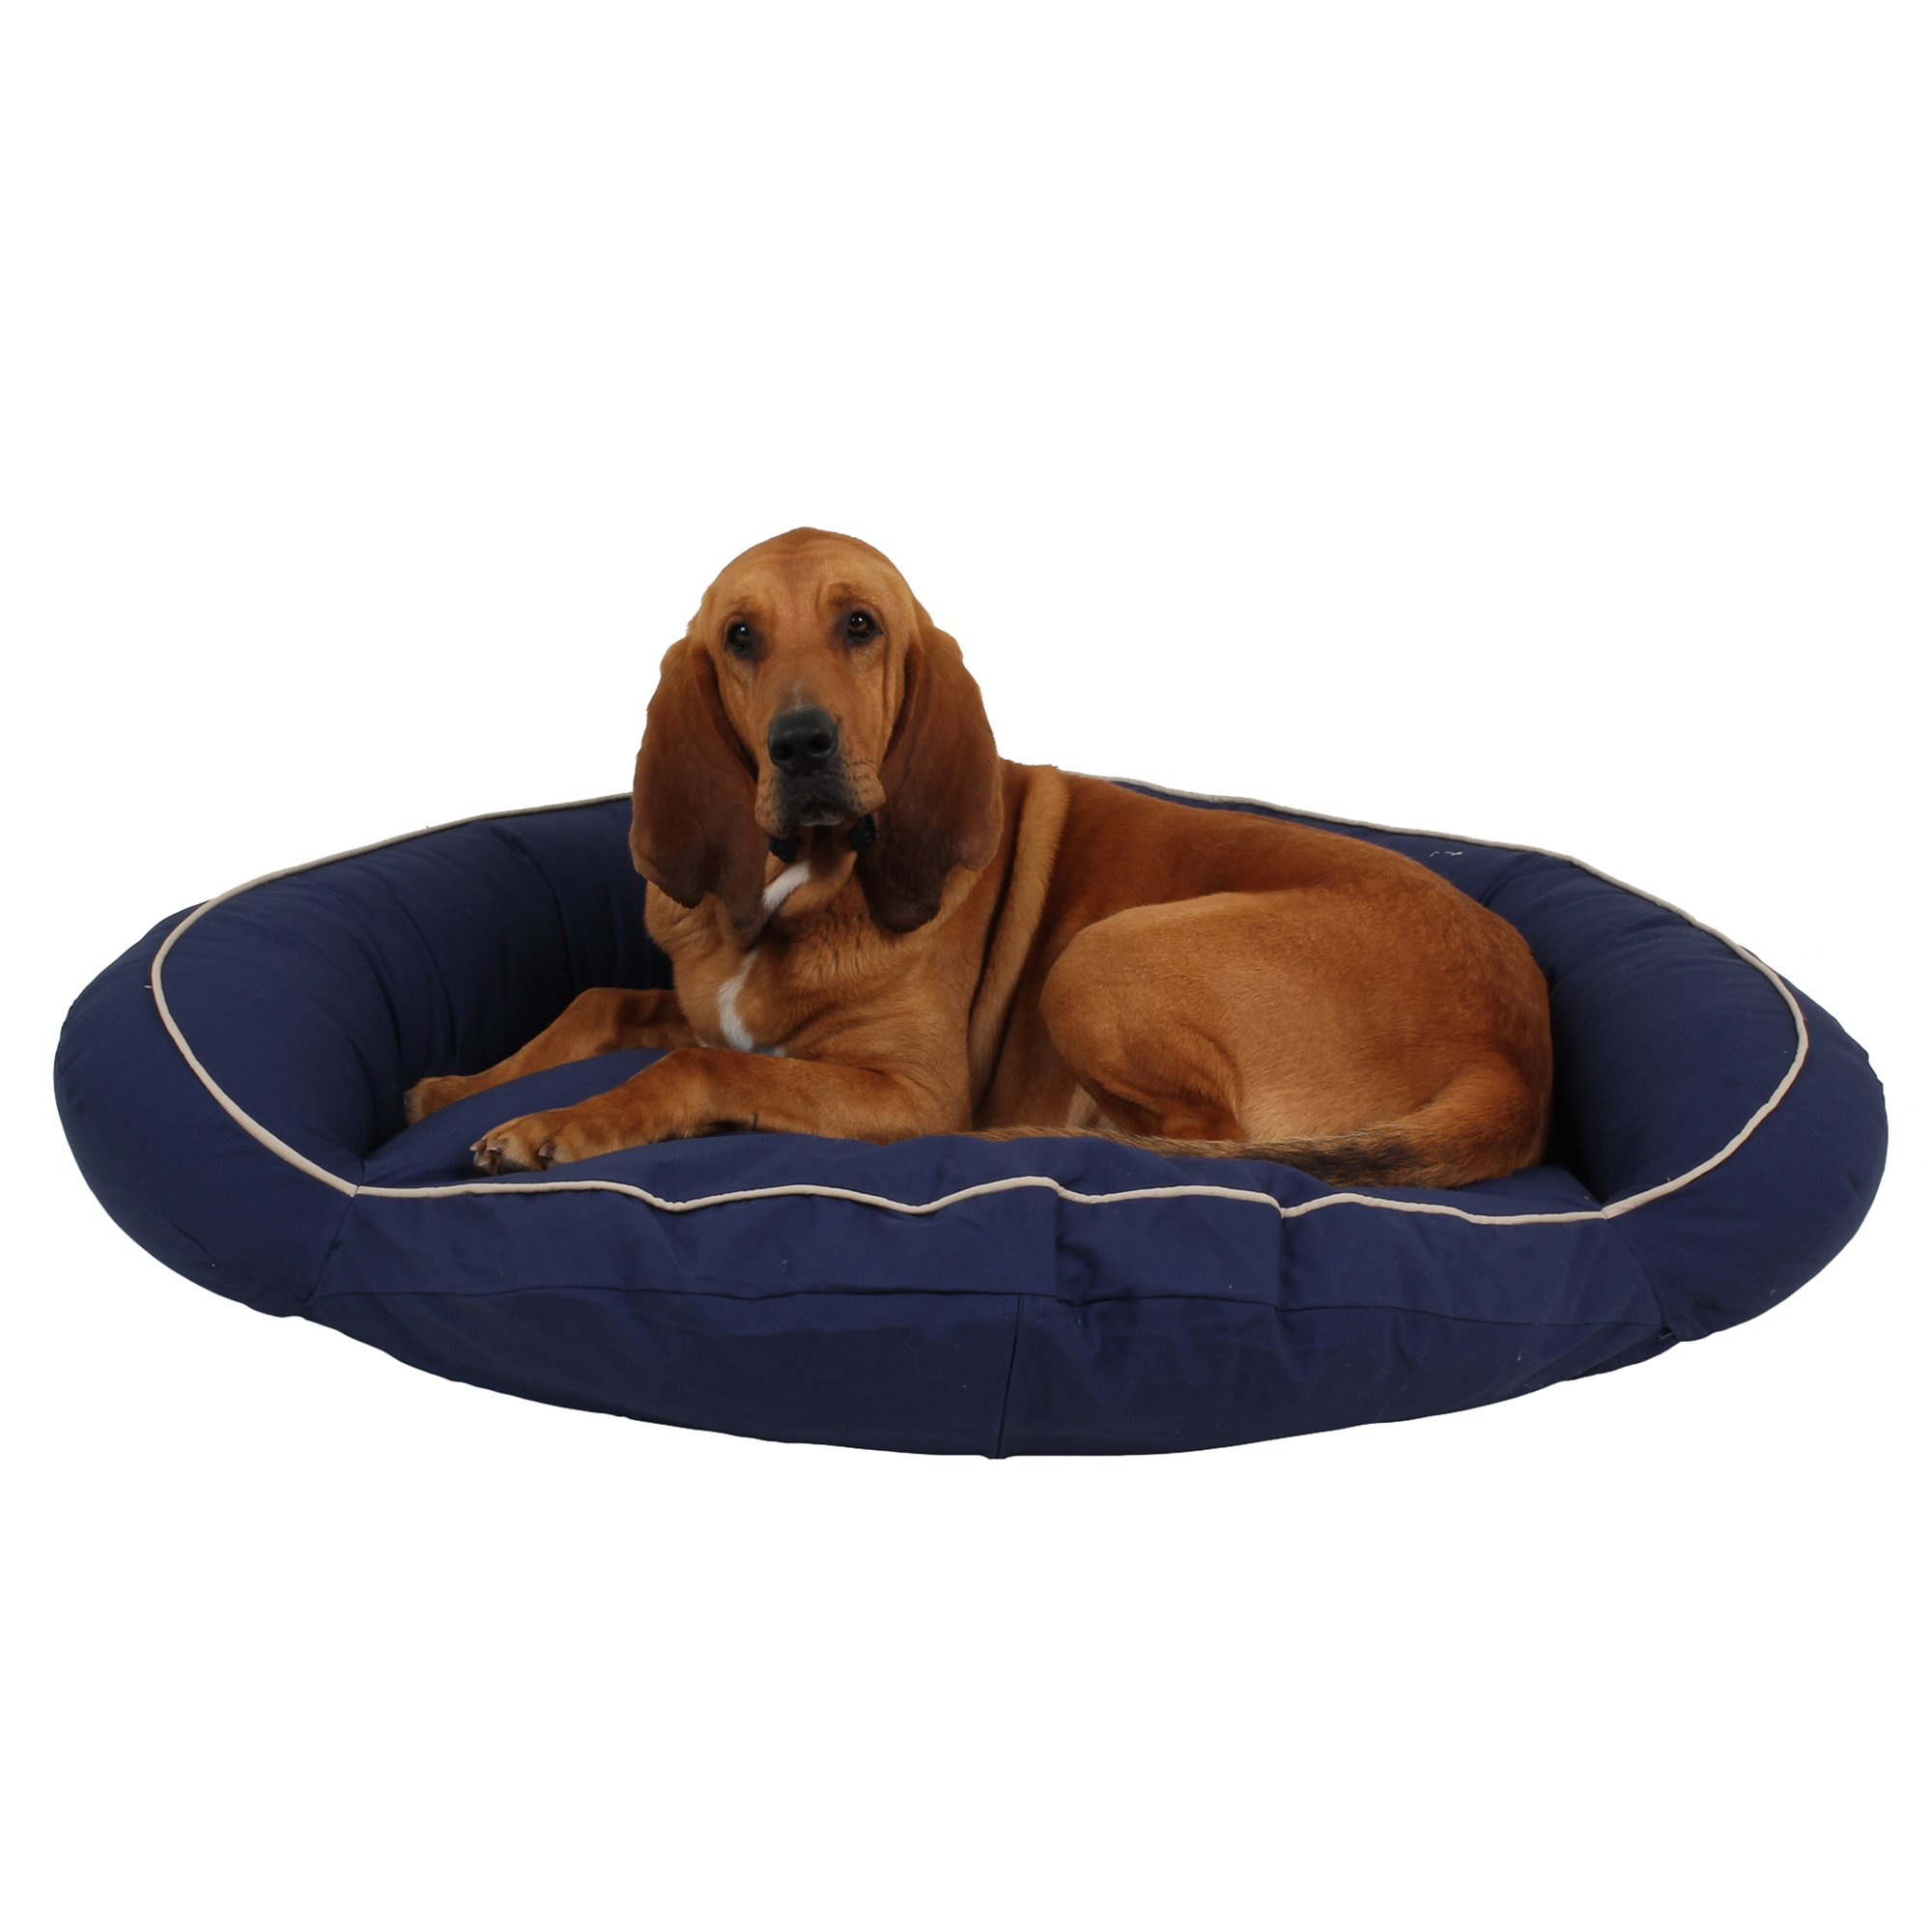 carolina pet bolster bed in blue canvas with khaki cording | petco